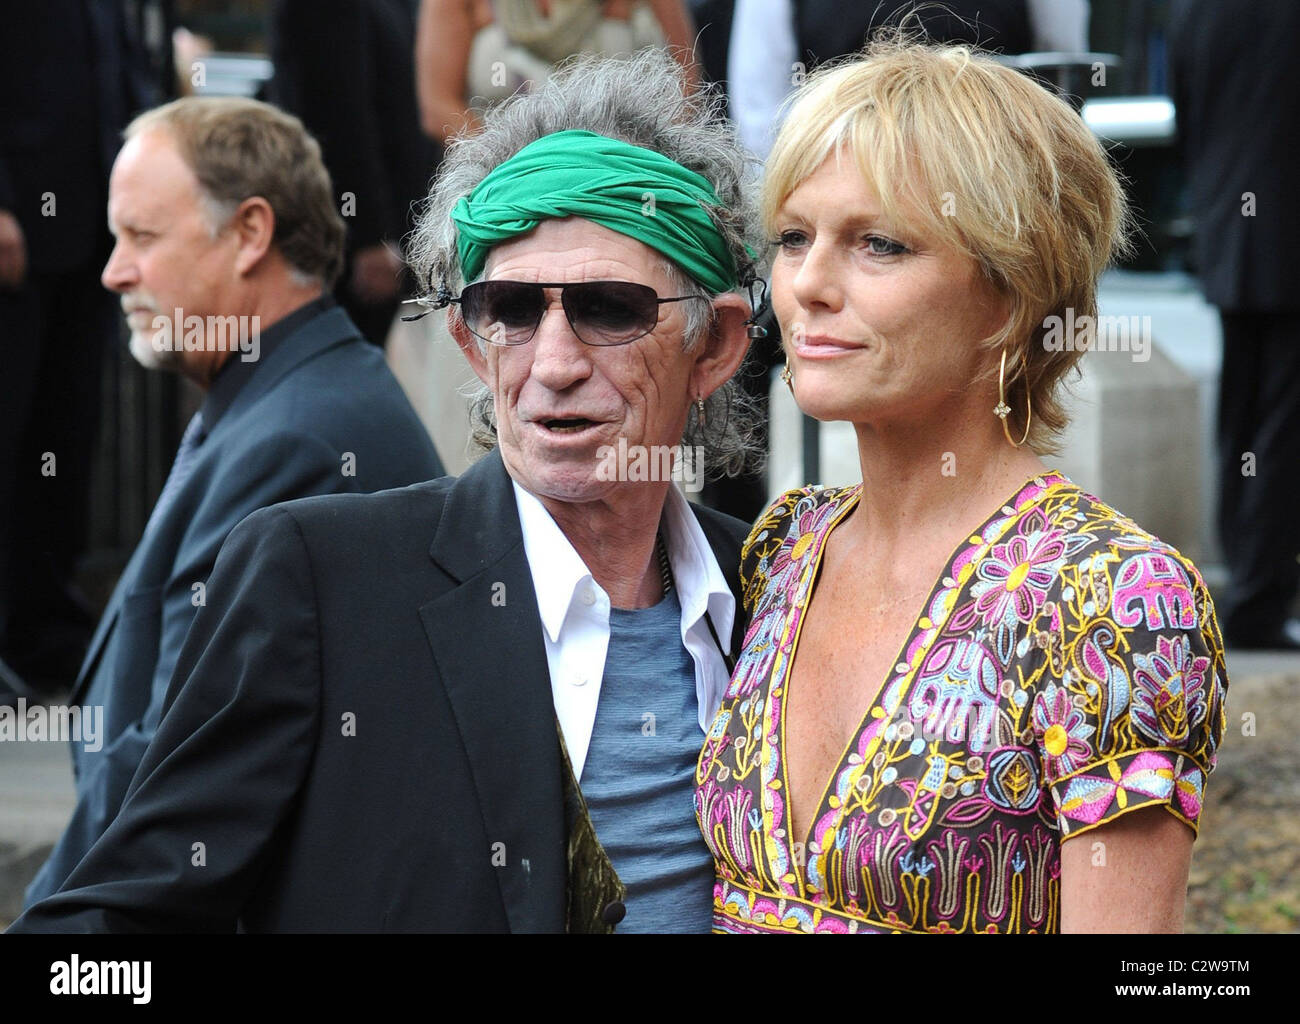 Keith Richards and Patti Hansen The wedding of Leah Wood ...